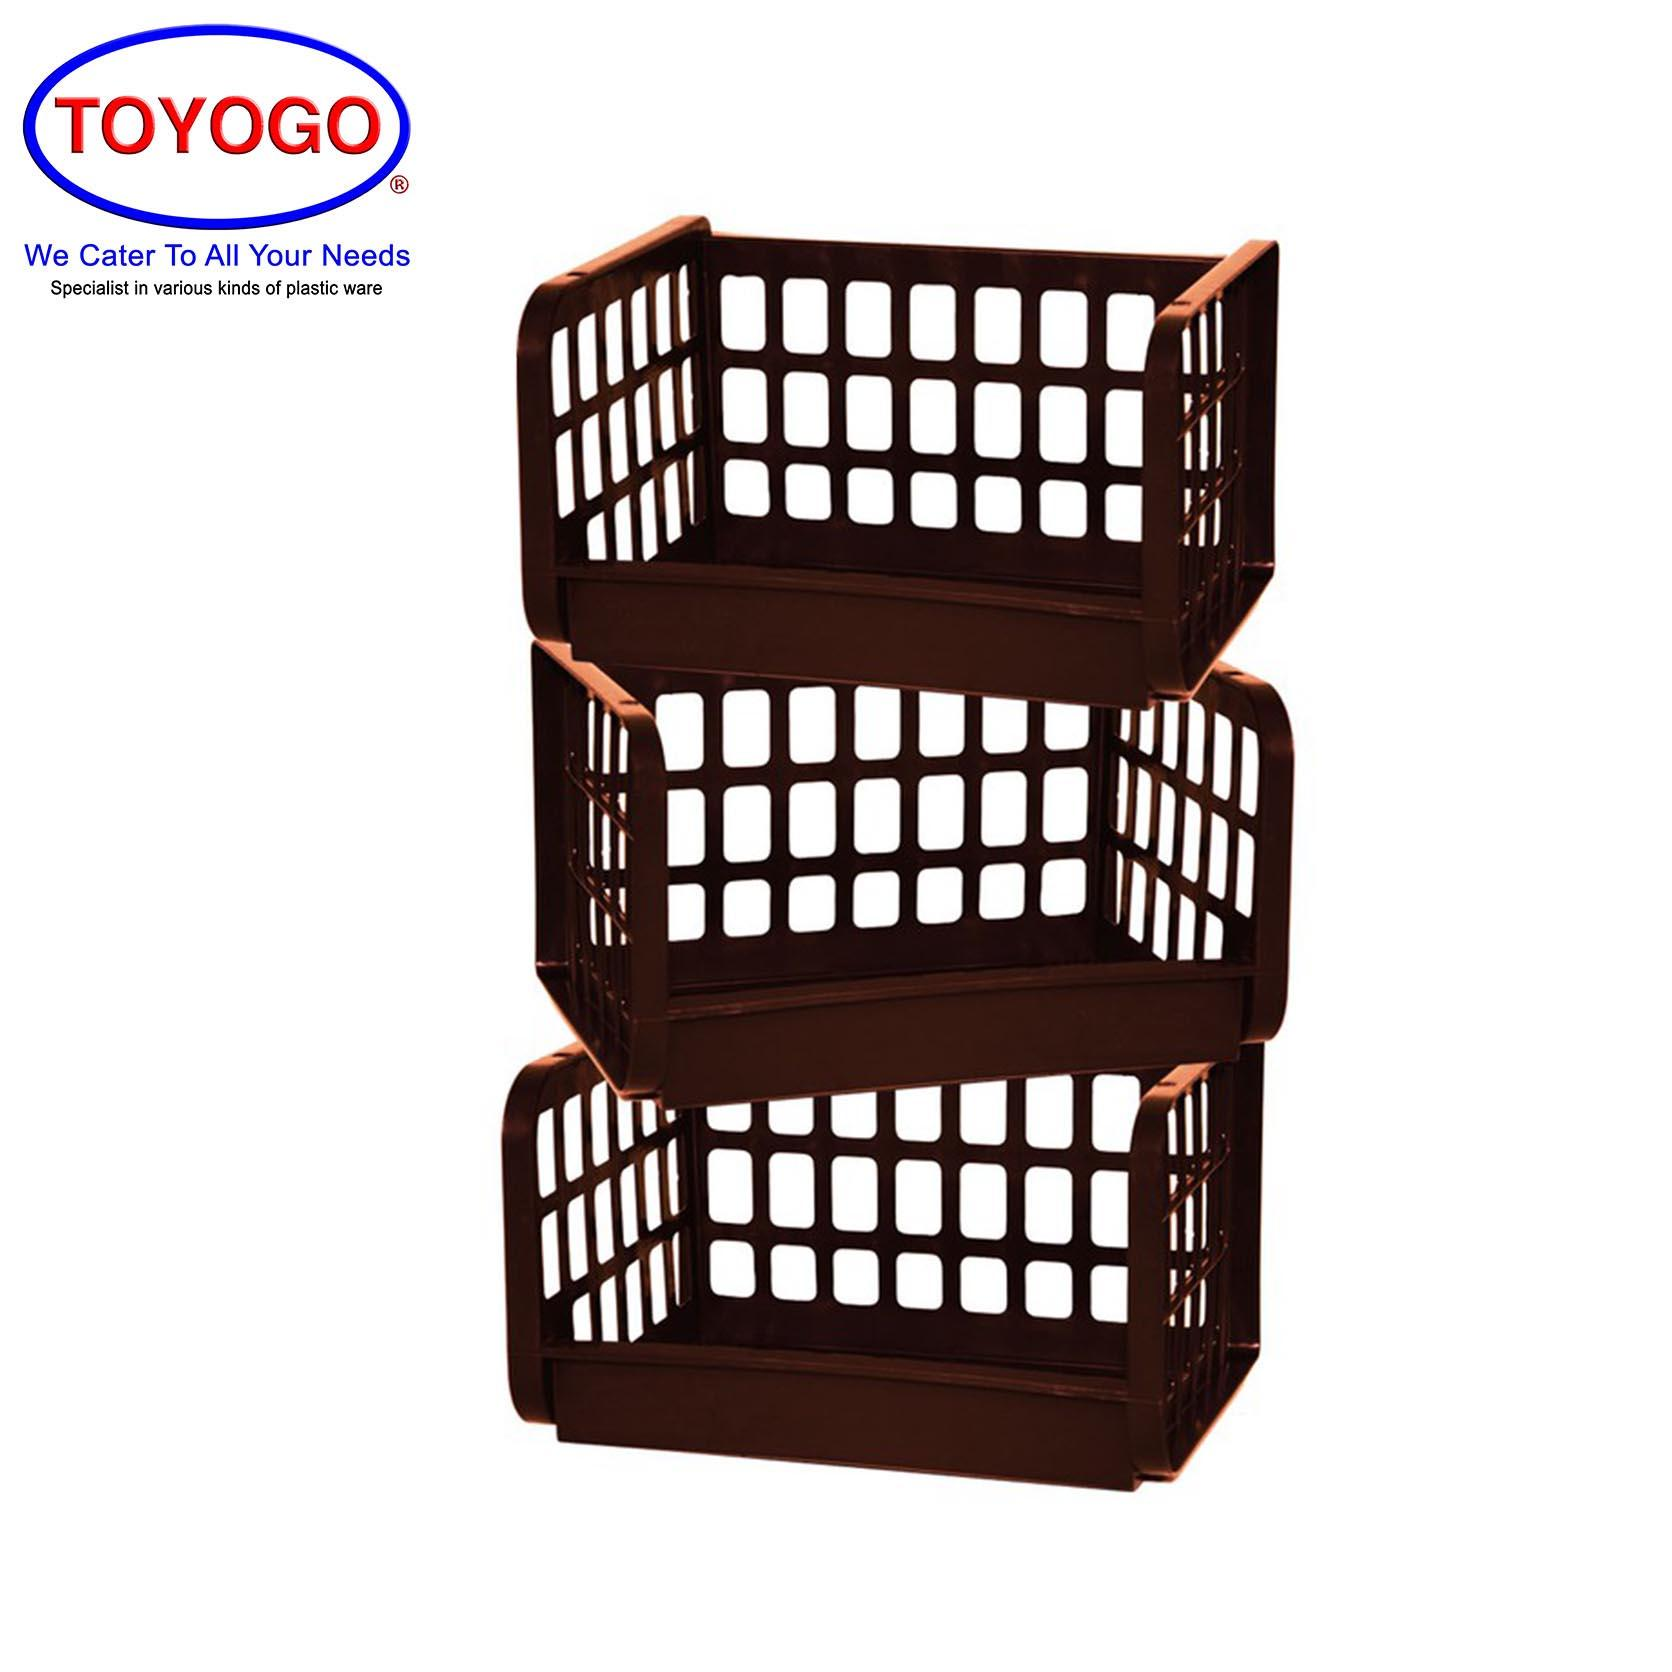 Toyogo Multi Racking (Bundle of 3) (7408)